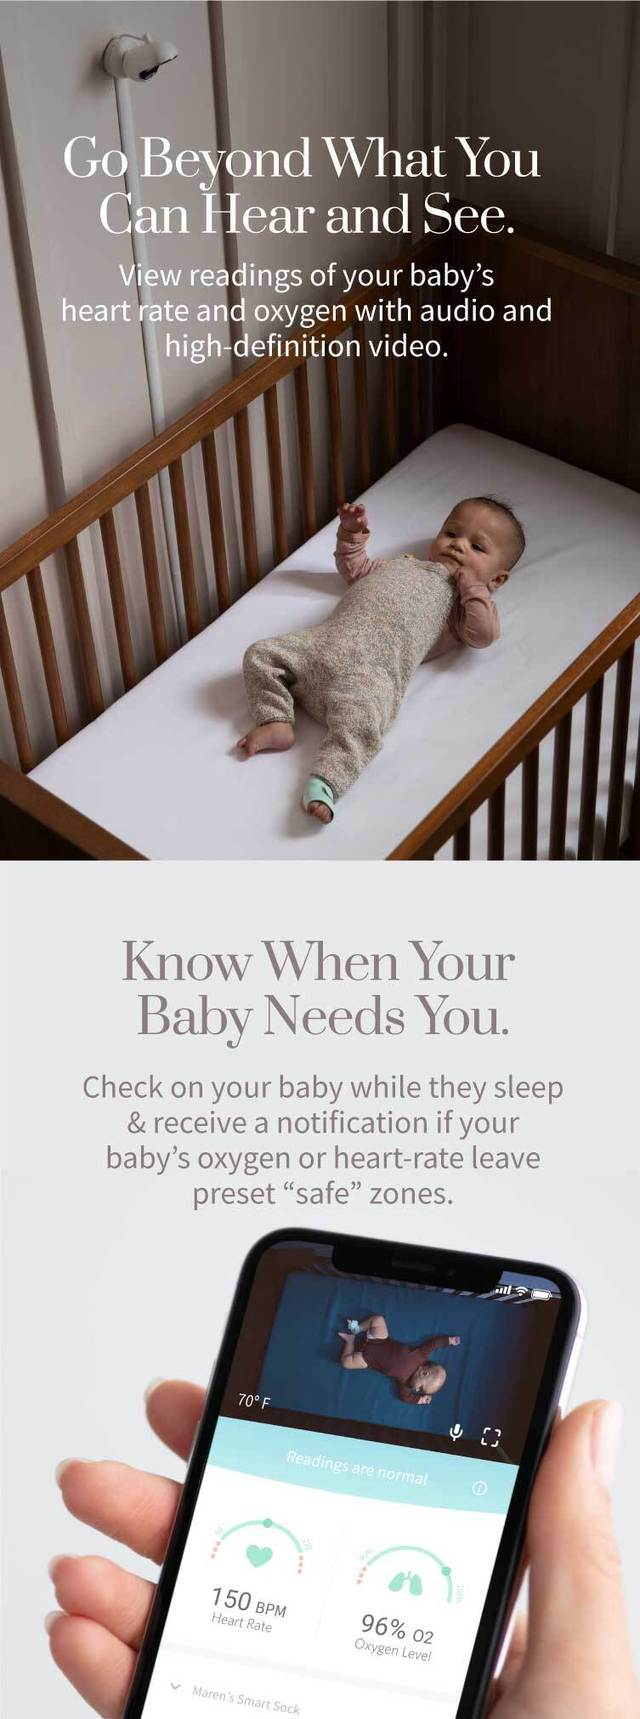 "Go beyond what you can hear and see: View readings of your baby's heart rate and oxygen with audio and hi-definition video. Receive a notification if your Baby's oxygen or heart rate leave preset ""safe"" zones."